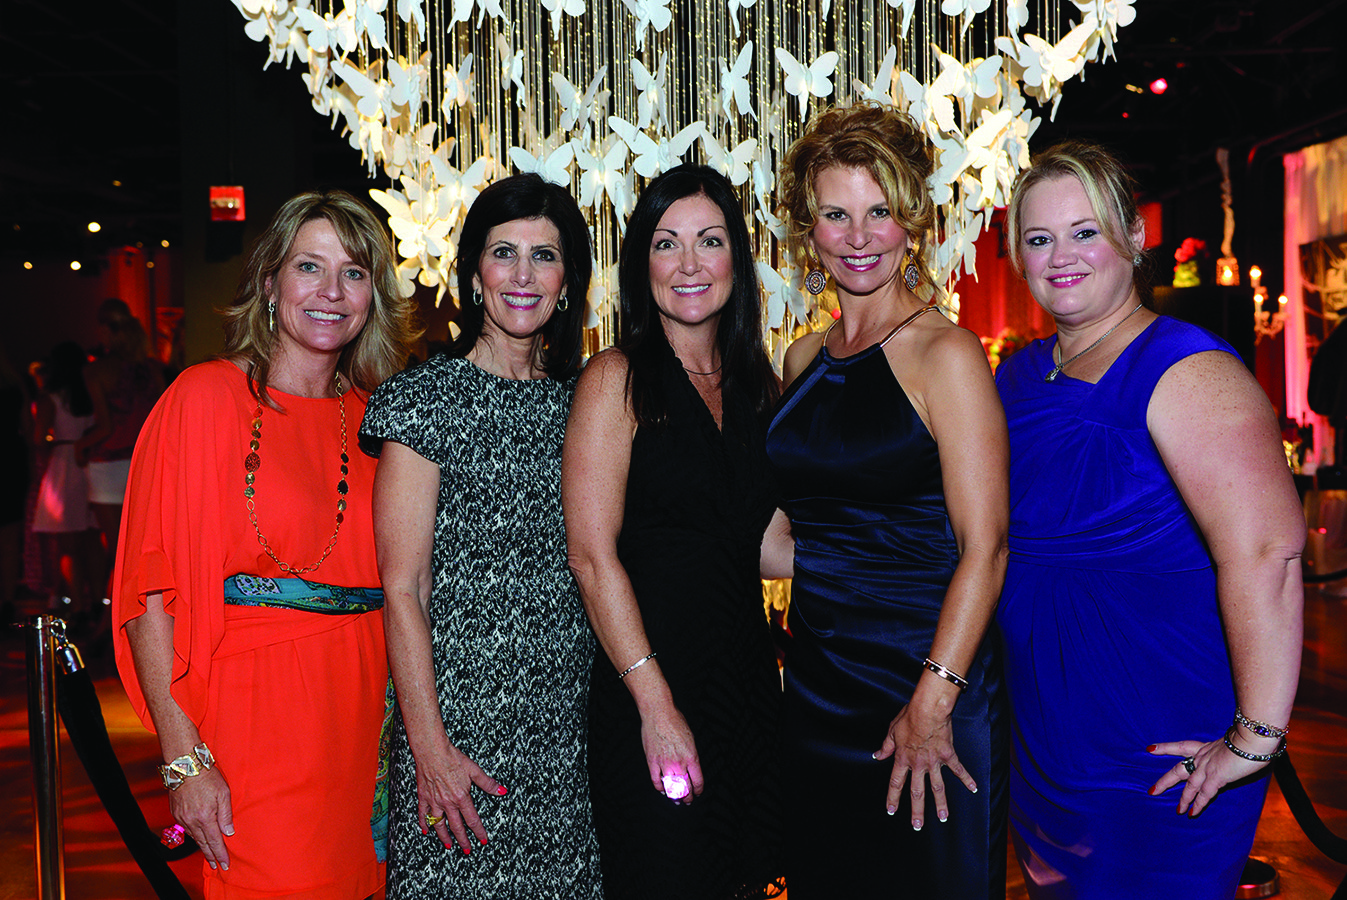 Society Scene photos - Julie Southern, left, Ronda Finkelstein, Elizabeth Cambareri, Kathleen Cannon and Tanya Bower wore fun and colorful dresses for the United Way of Broward County